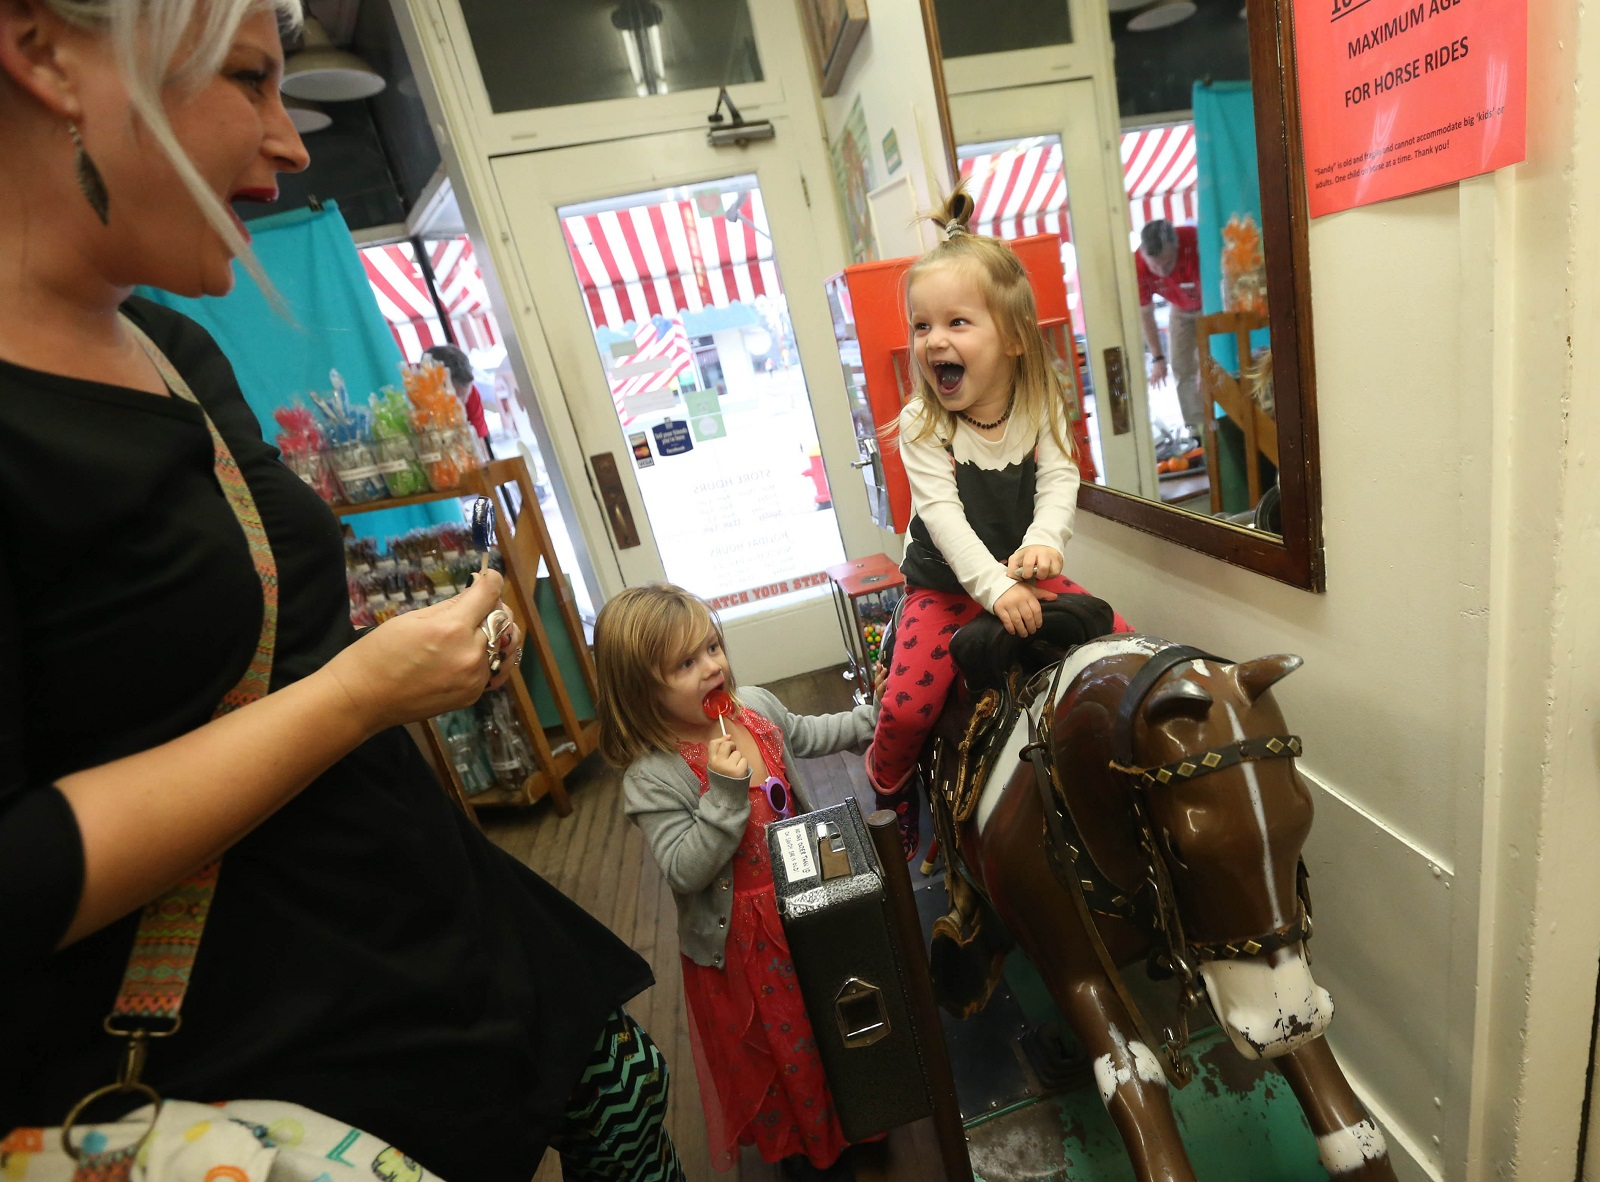 Audrey Slanovich of East Aurora puts in a dime into the mechanical horsey, so her daughter Betty can ride it. The ride is more robust than she expected.  Looking on is her sister Leora, 4. (Sharon Cantillon/Buffalo News)